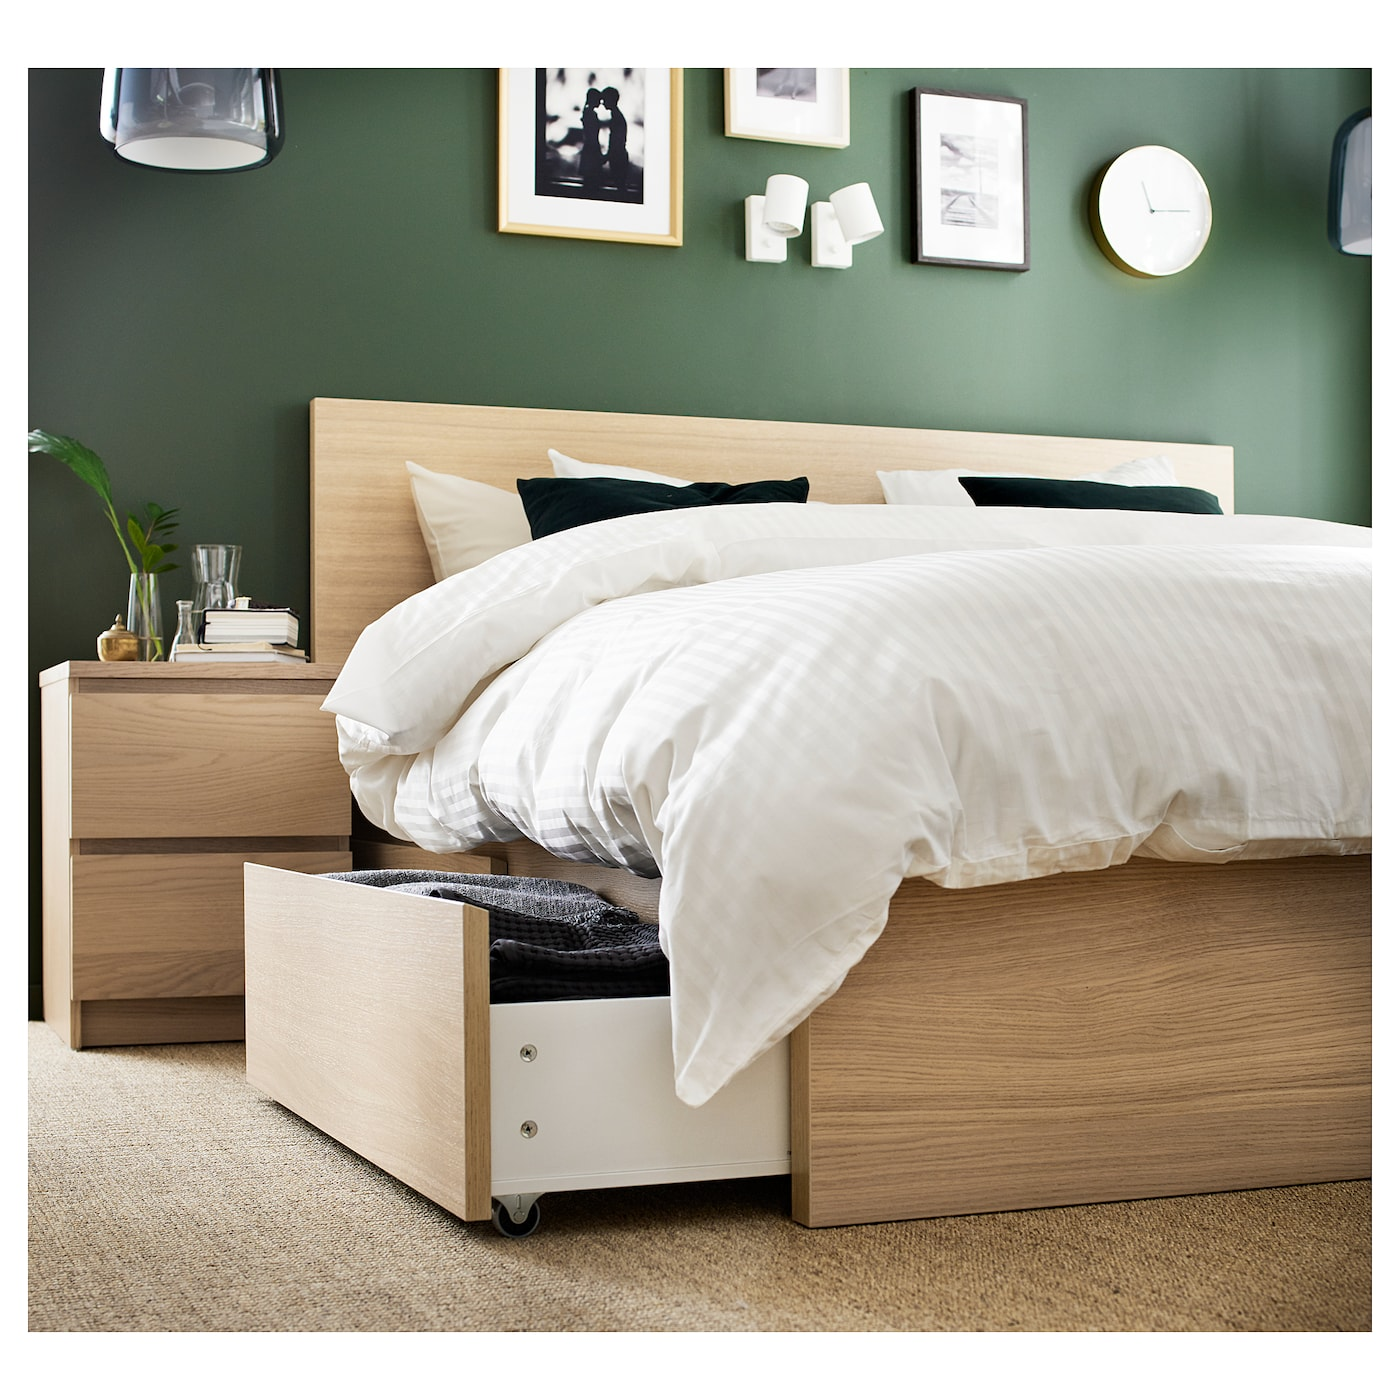 MALM white stained oak veneer, Bed